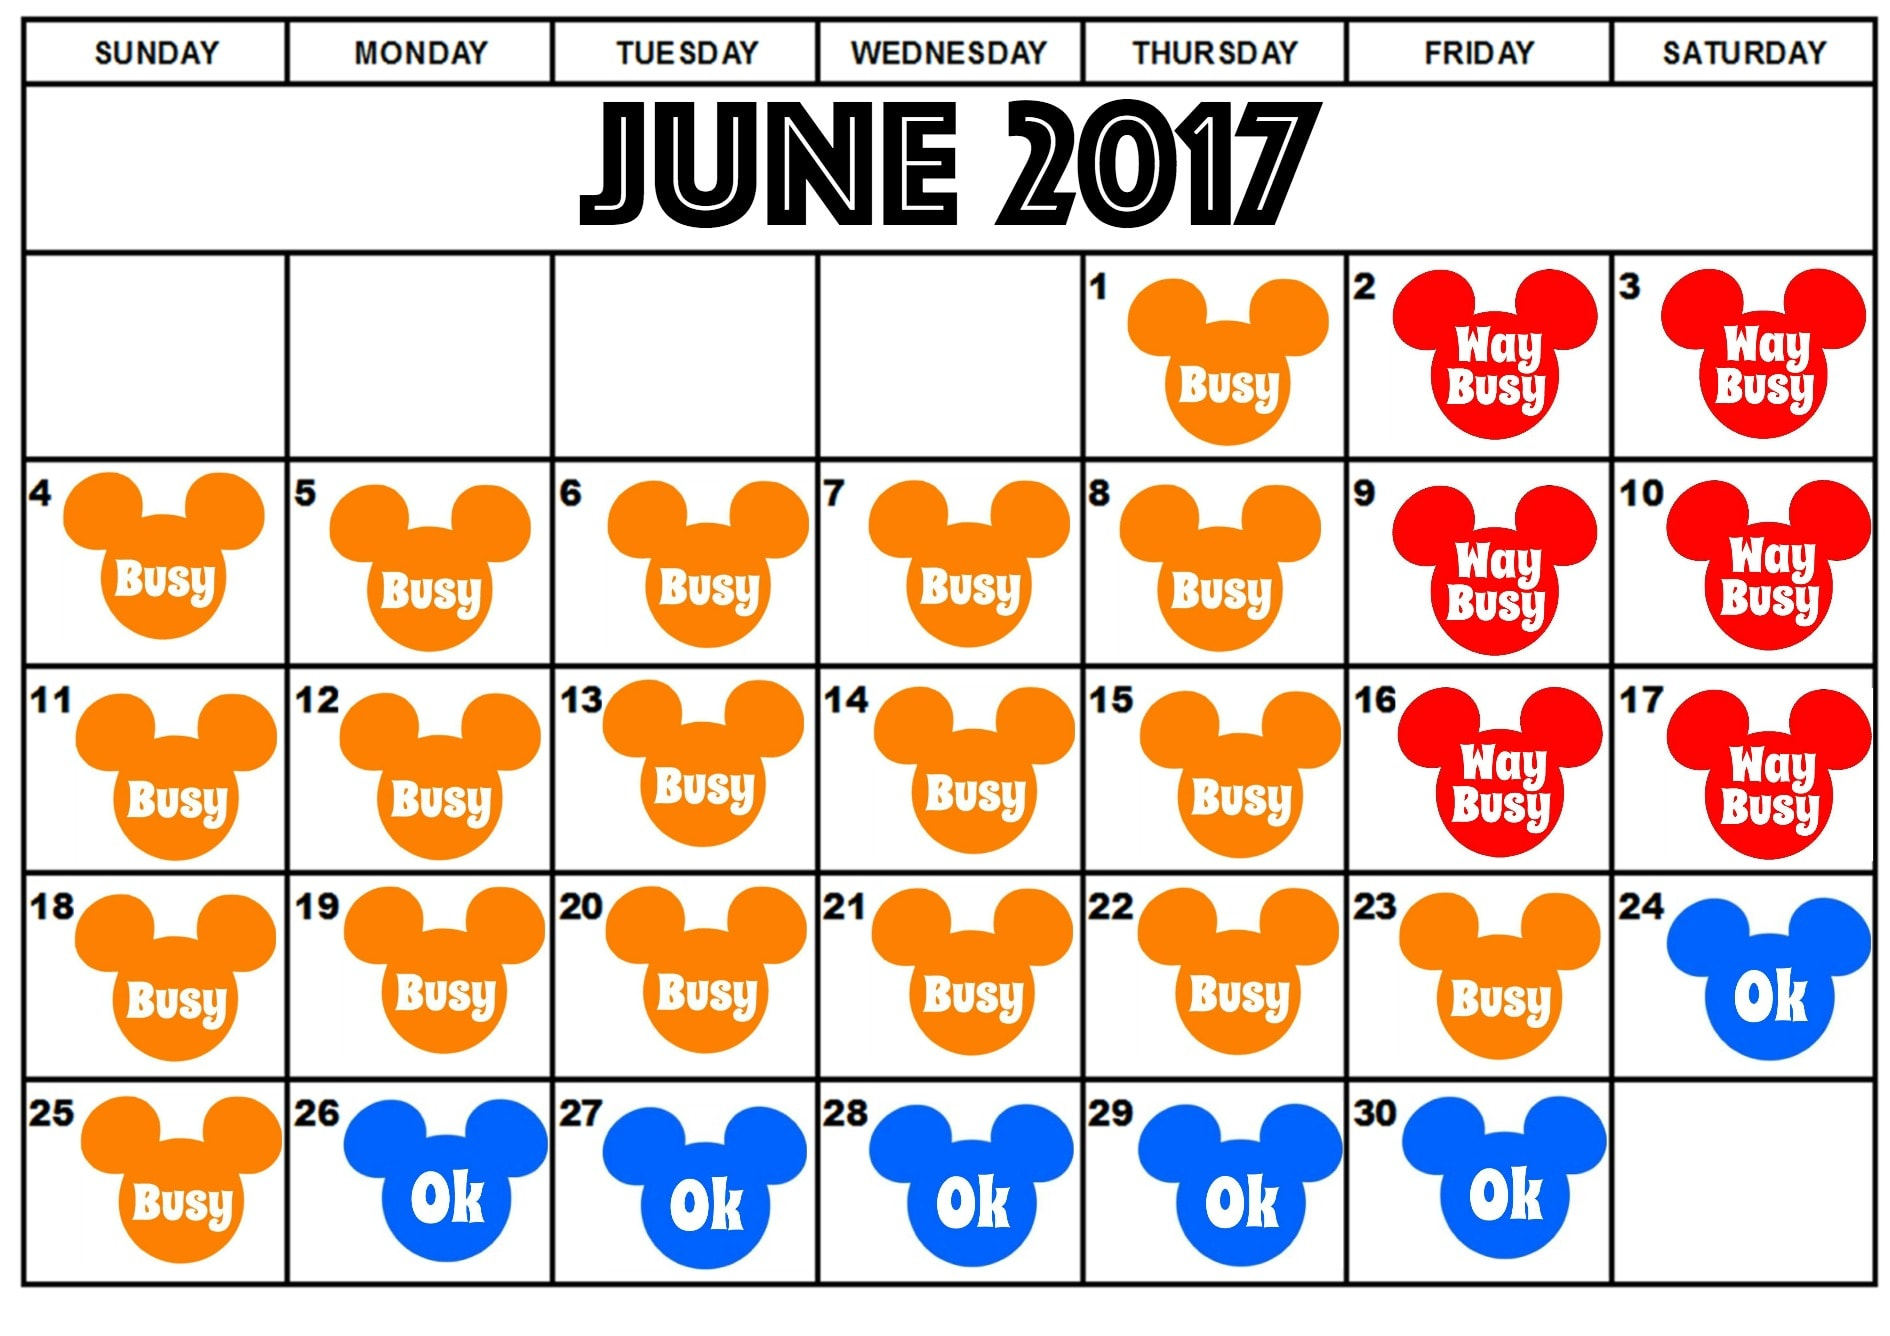 Disneyland June Crowd Calendar